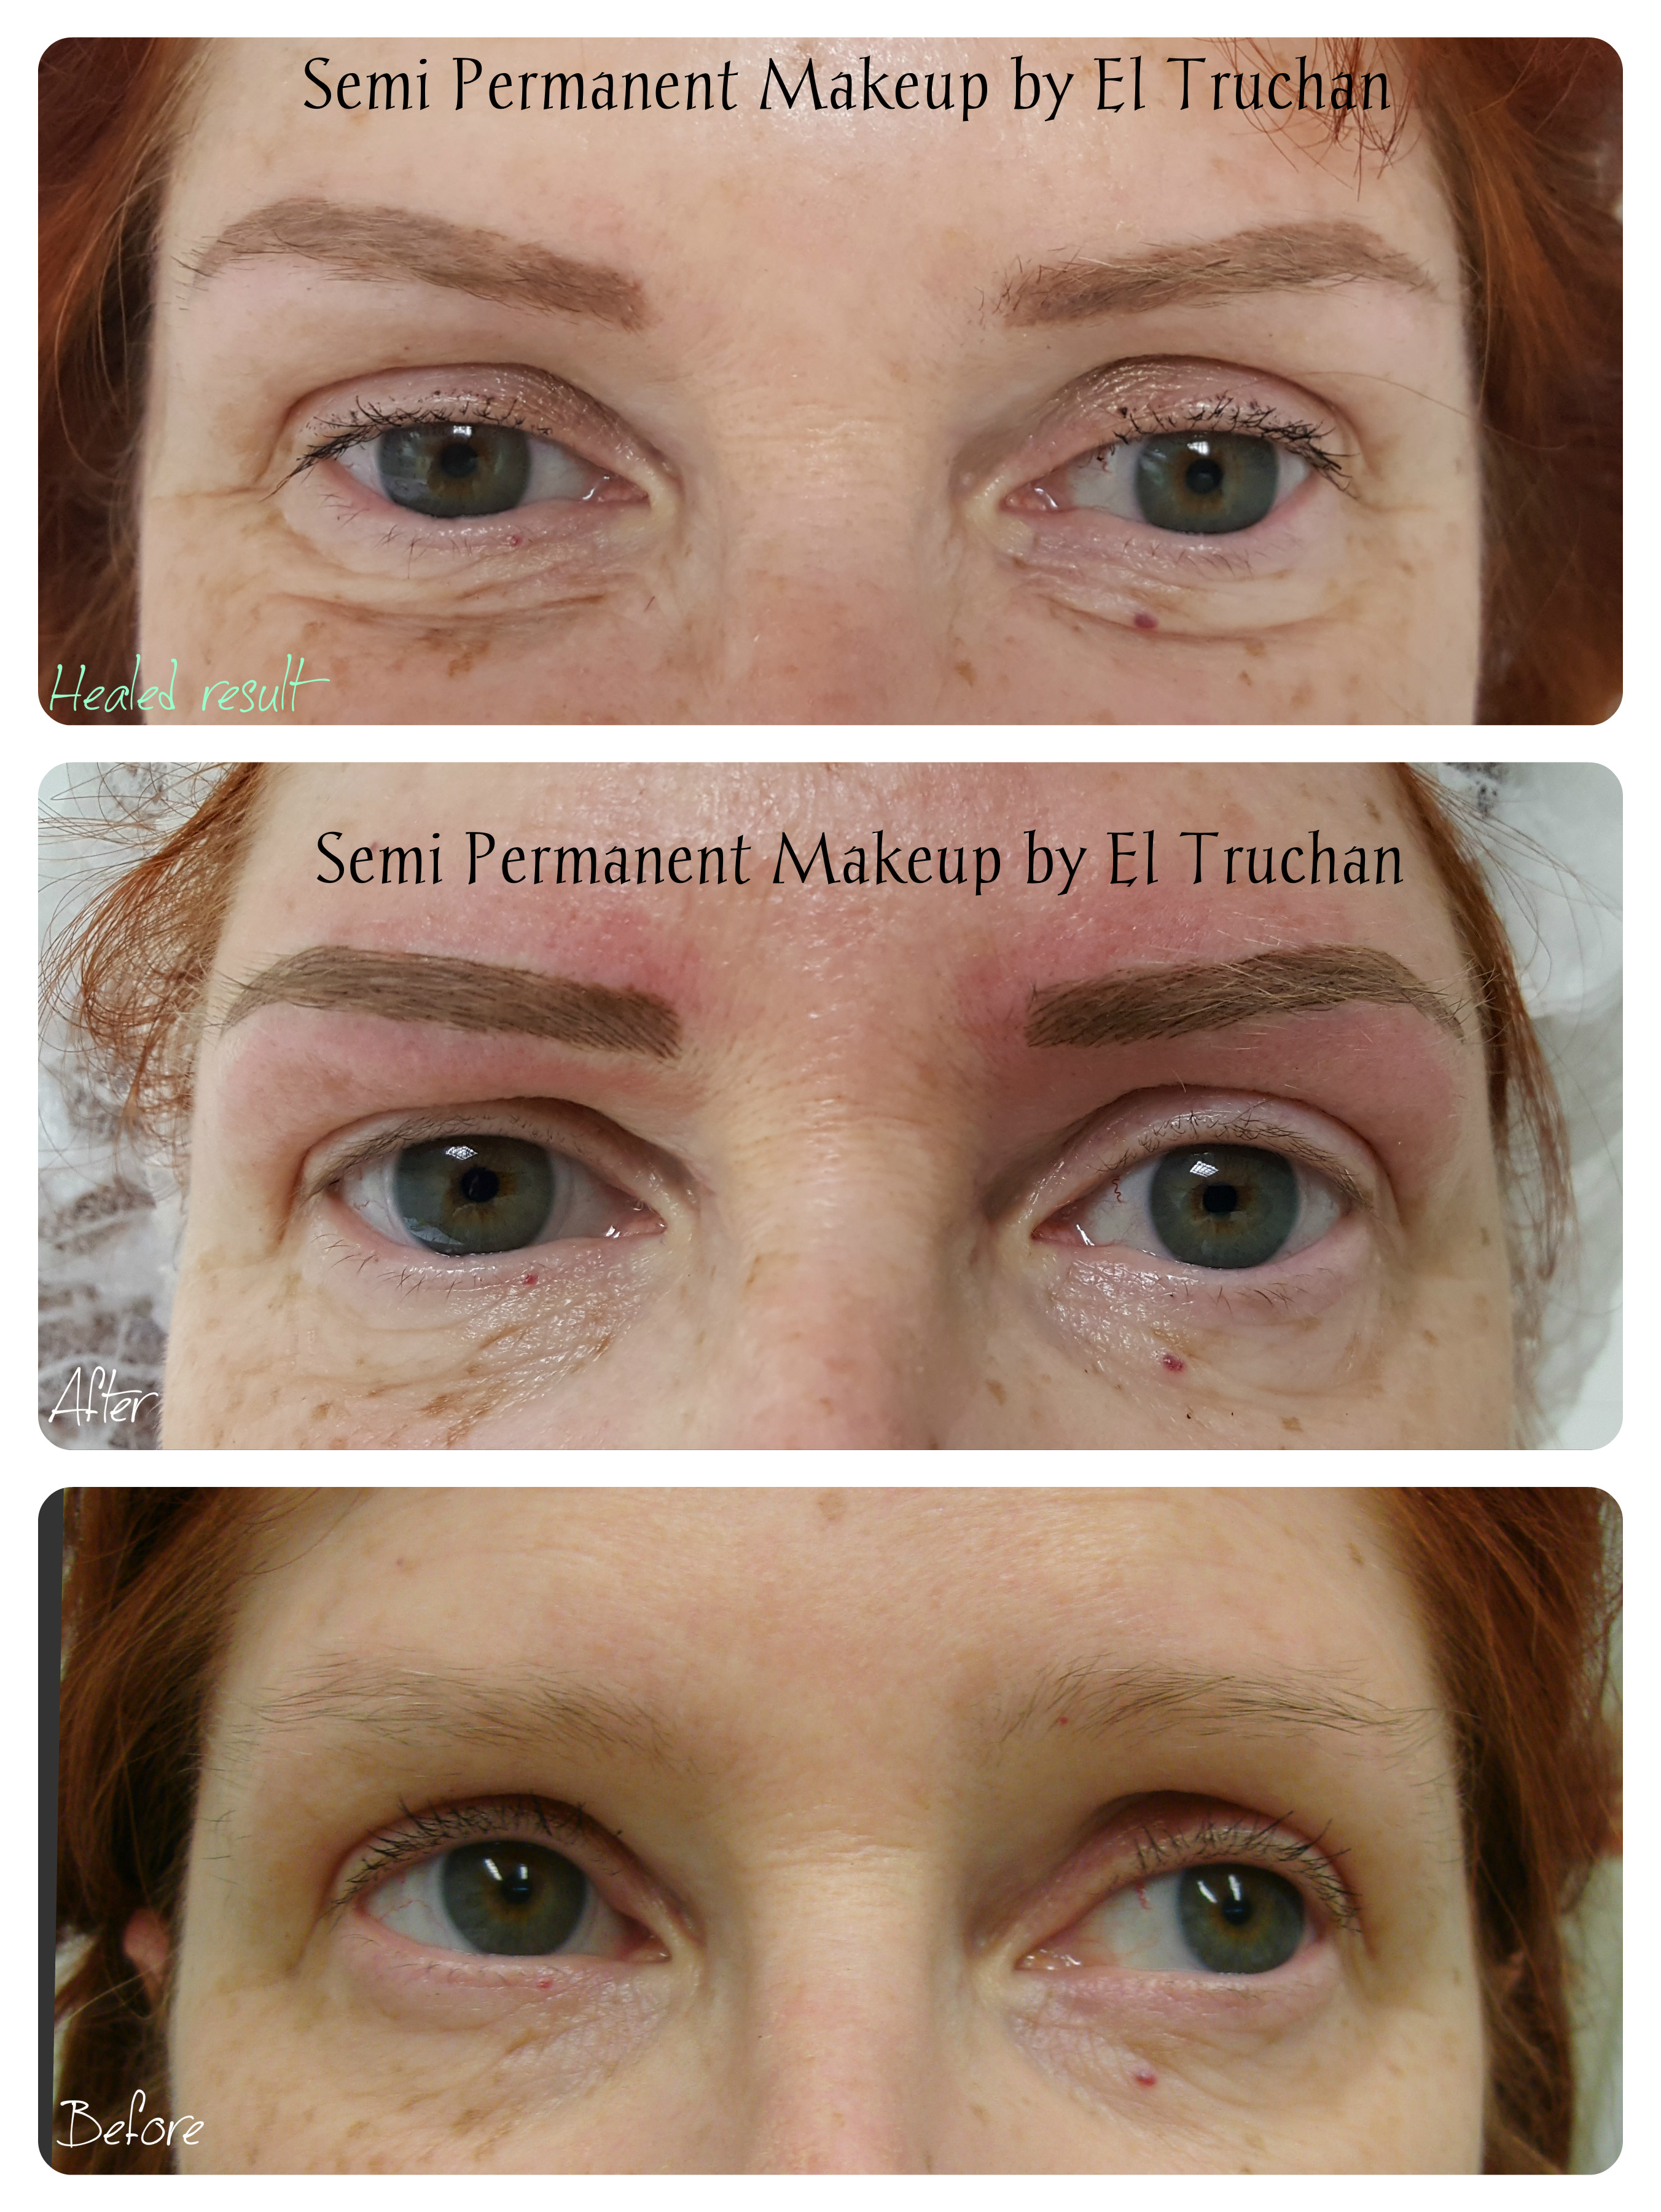 Semi Permanent eyebrow make up by el truchan